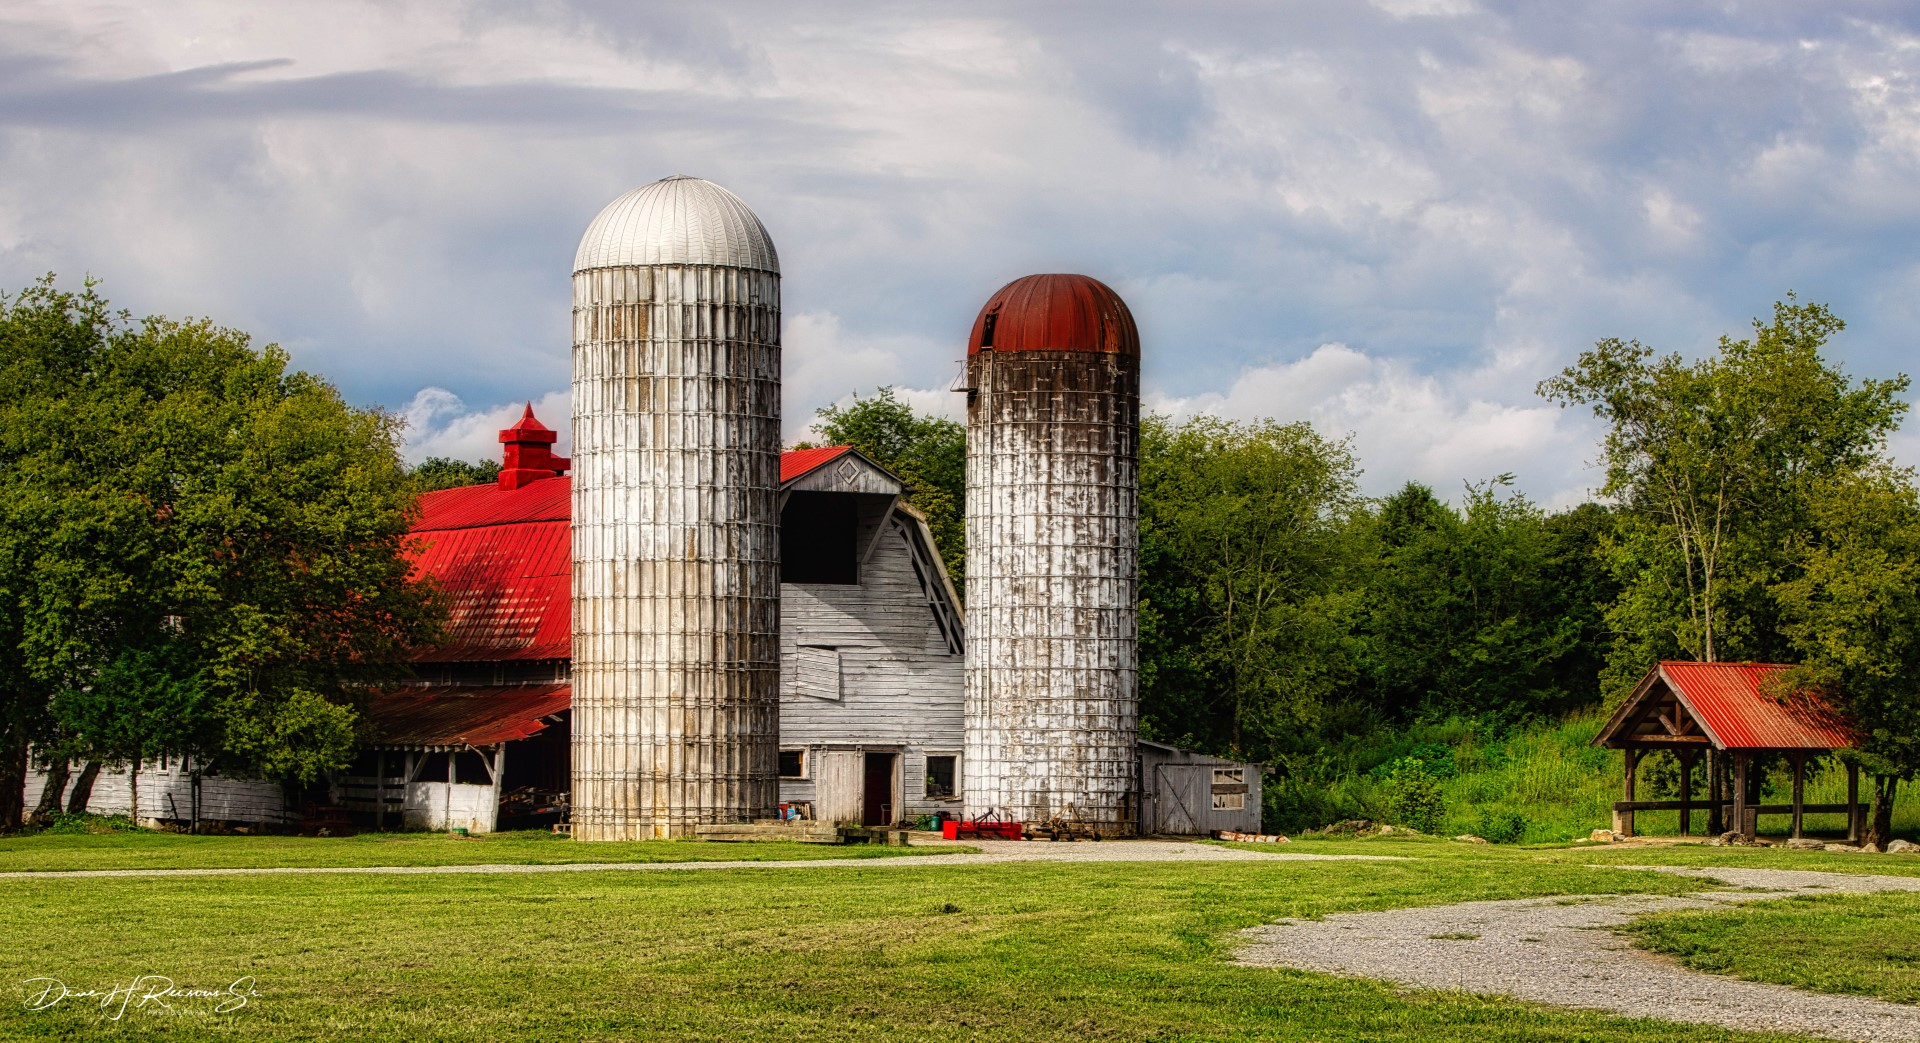 Dairy Barn & silos at Dunlop Farms on US-11